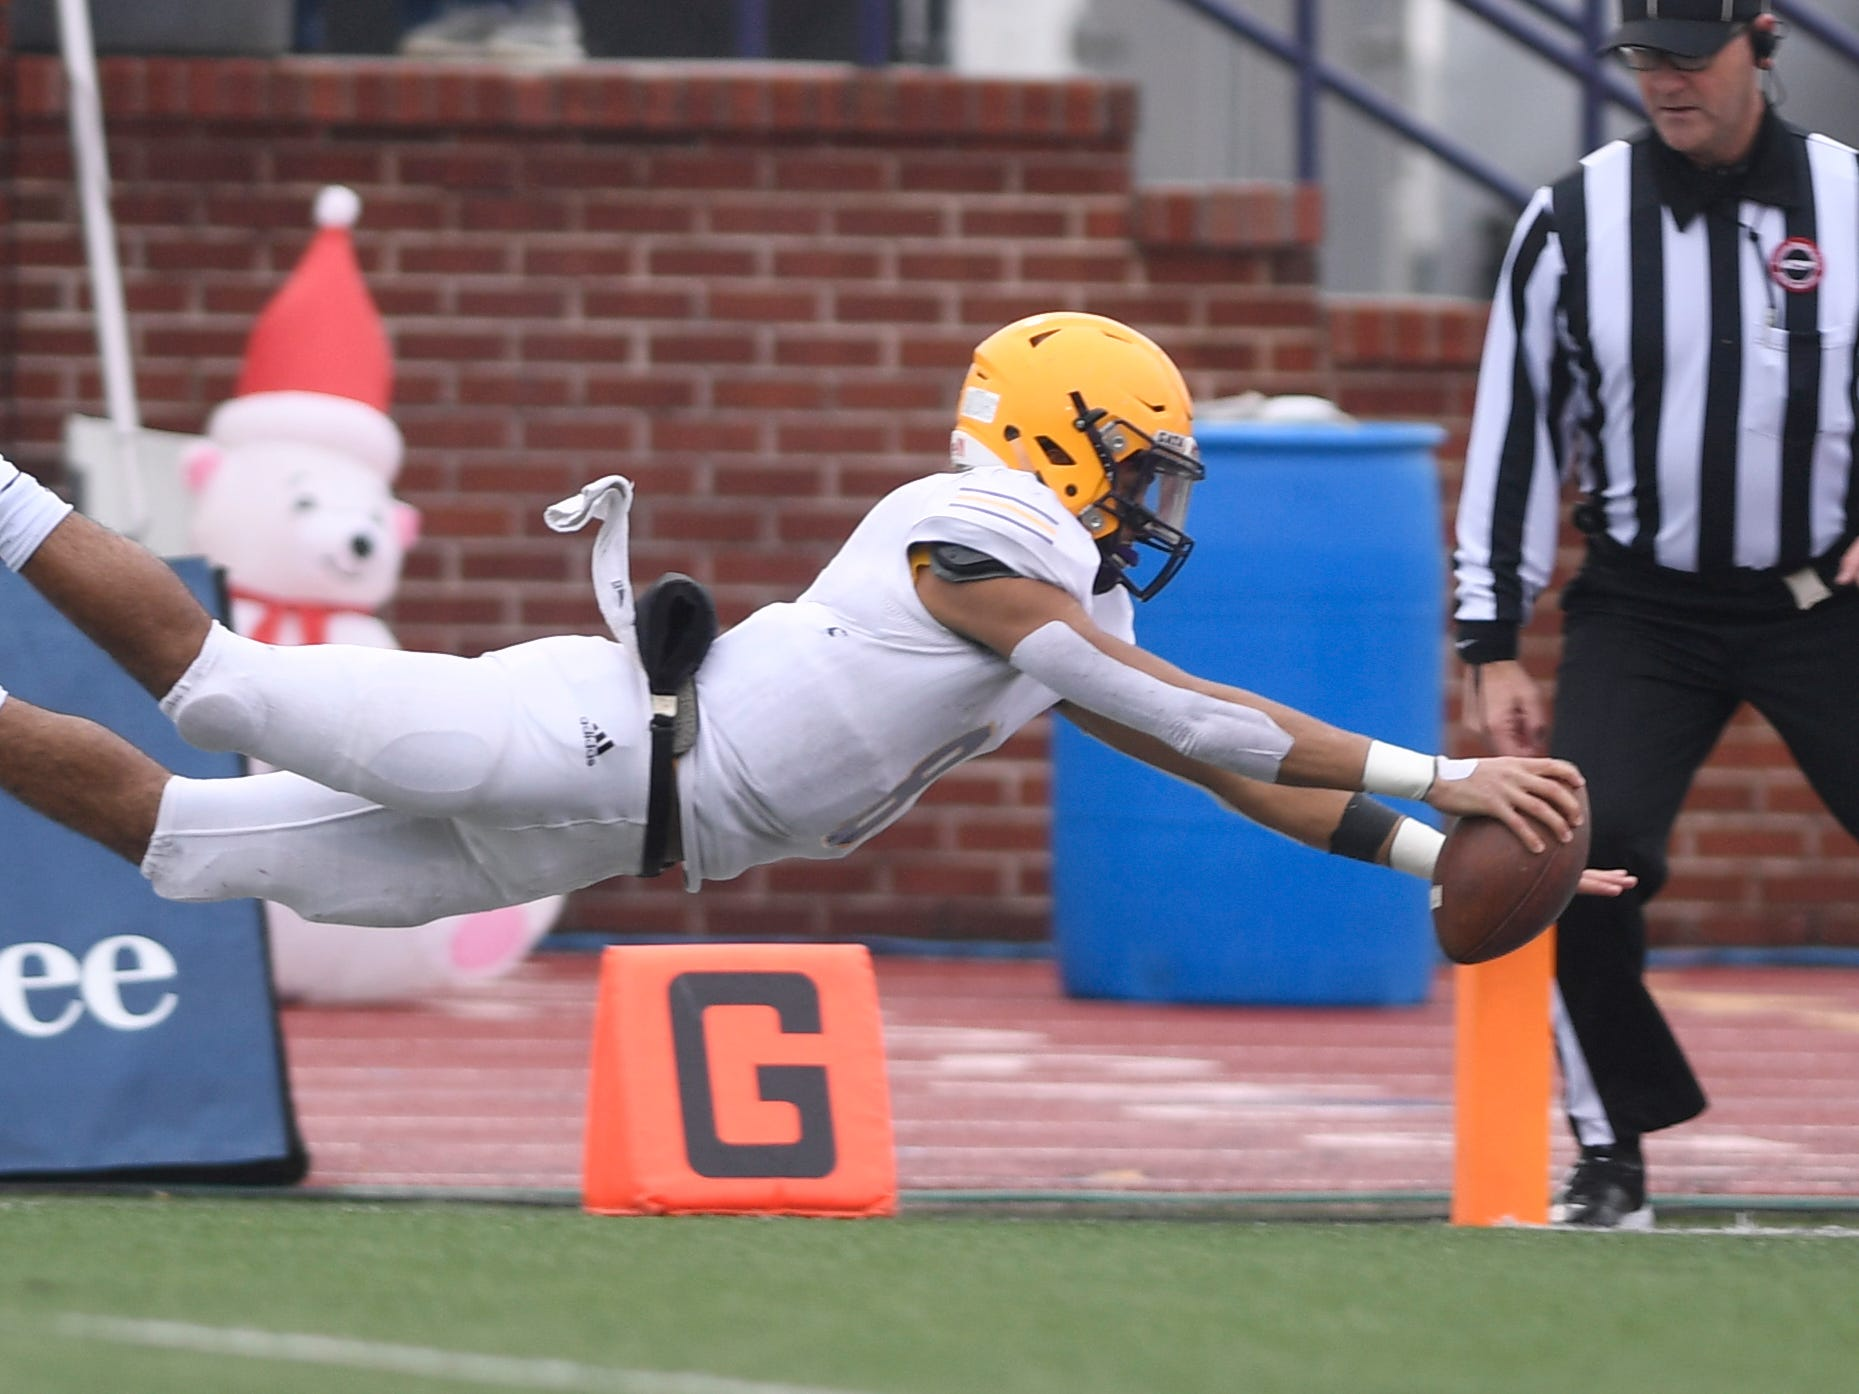 Trousdale's Keyvont Baines (8) scores in the second quarter of the Class 2A BlueCross Bowl state championship at Tennessee Tech's Tucker Stadium in Cookeville, Tenn., on Thursday, Nov. 29, 2018.